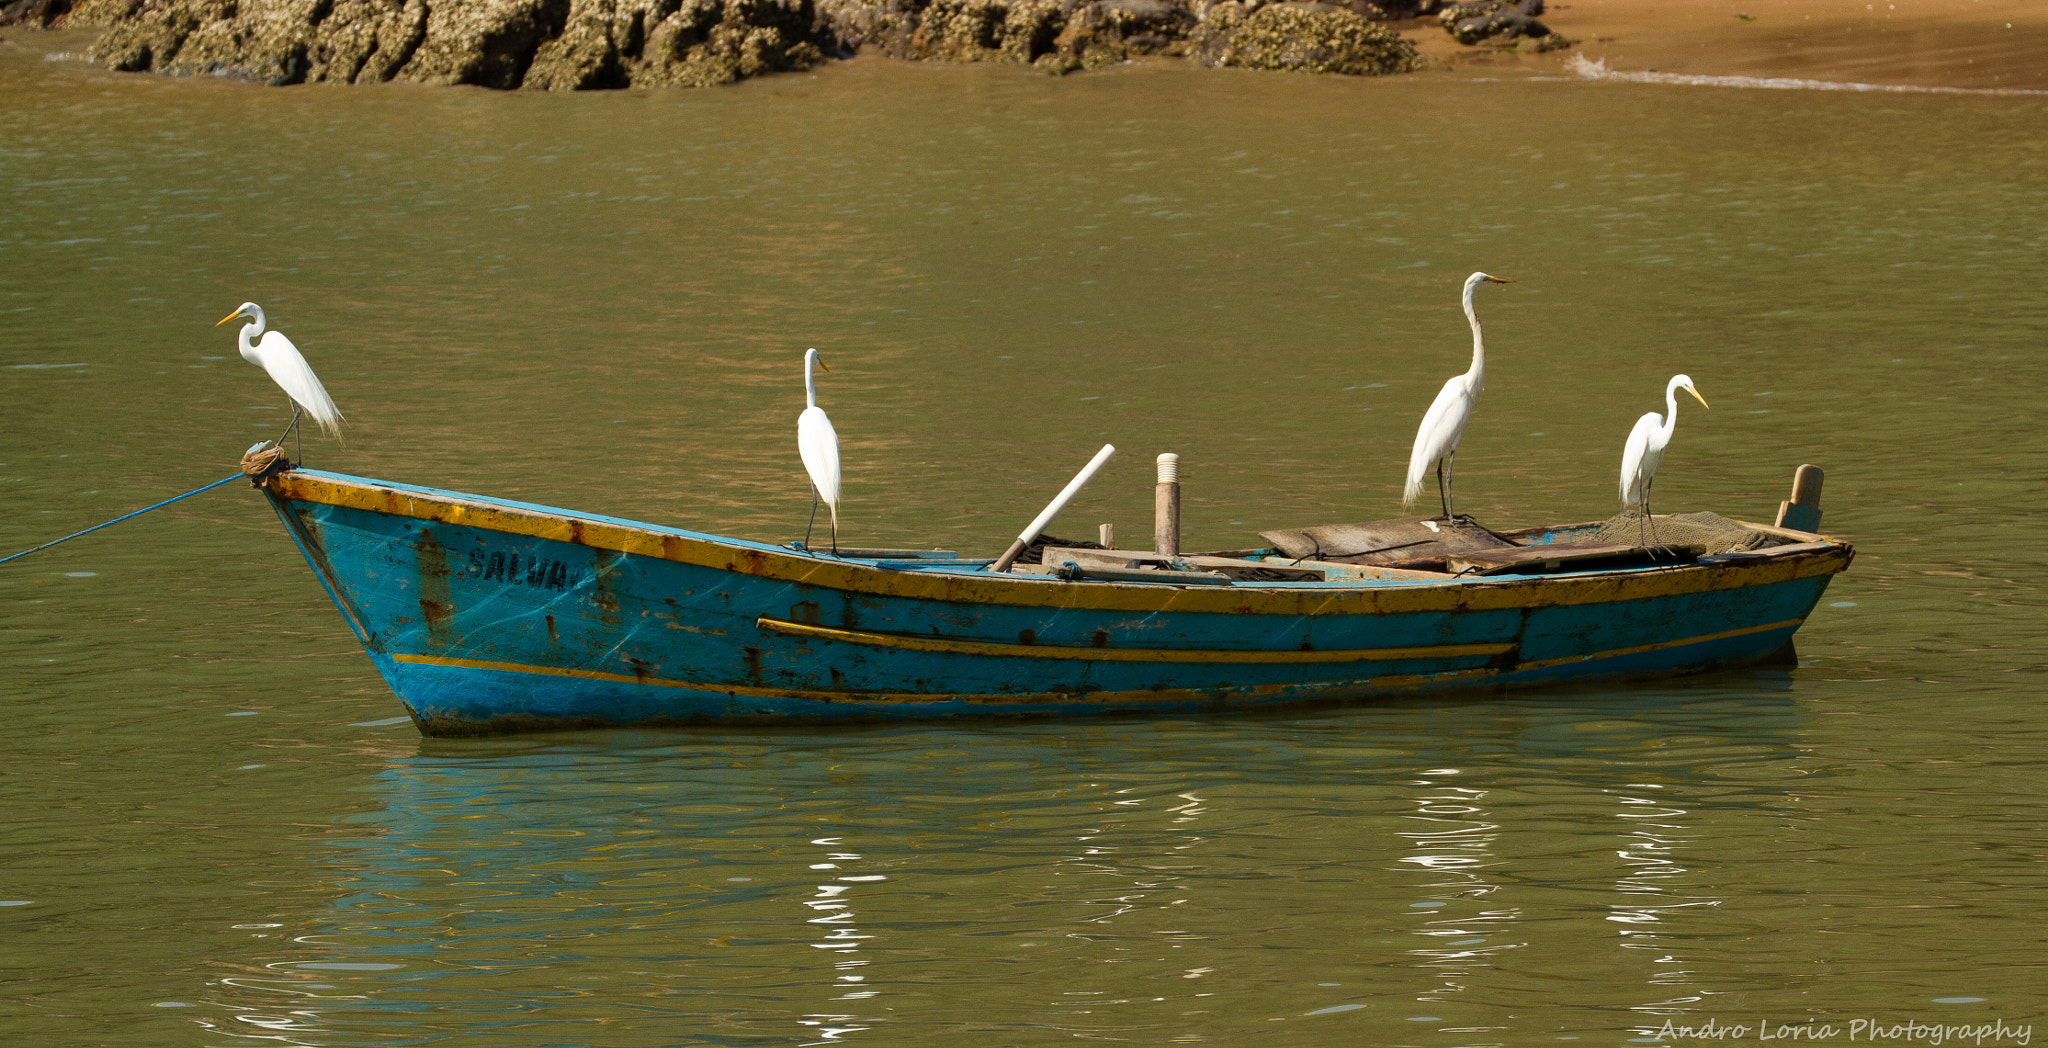 Photograph fishing party by Andro Loria on 500px